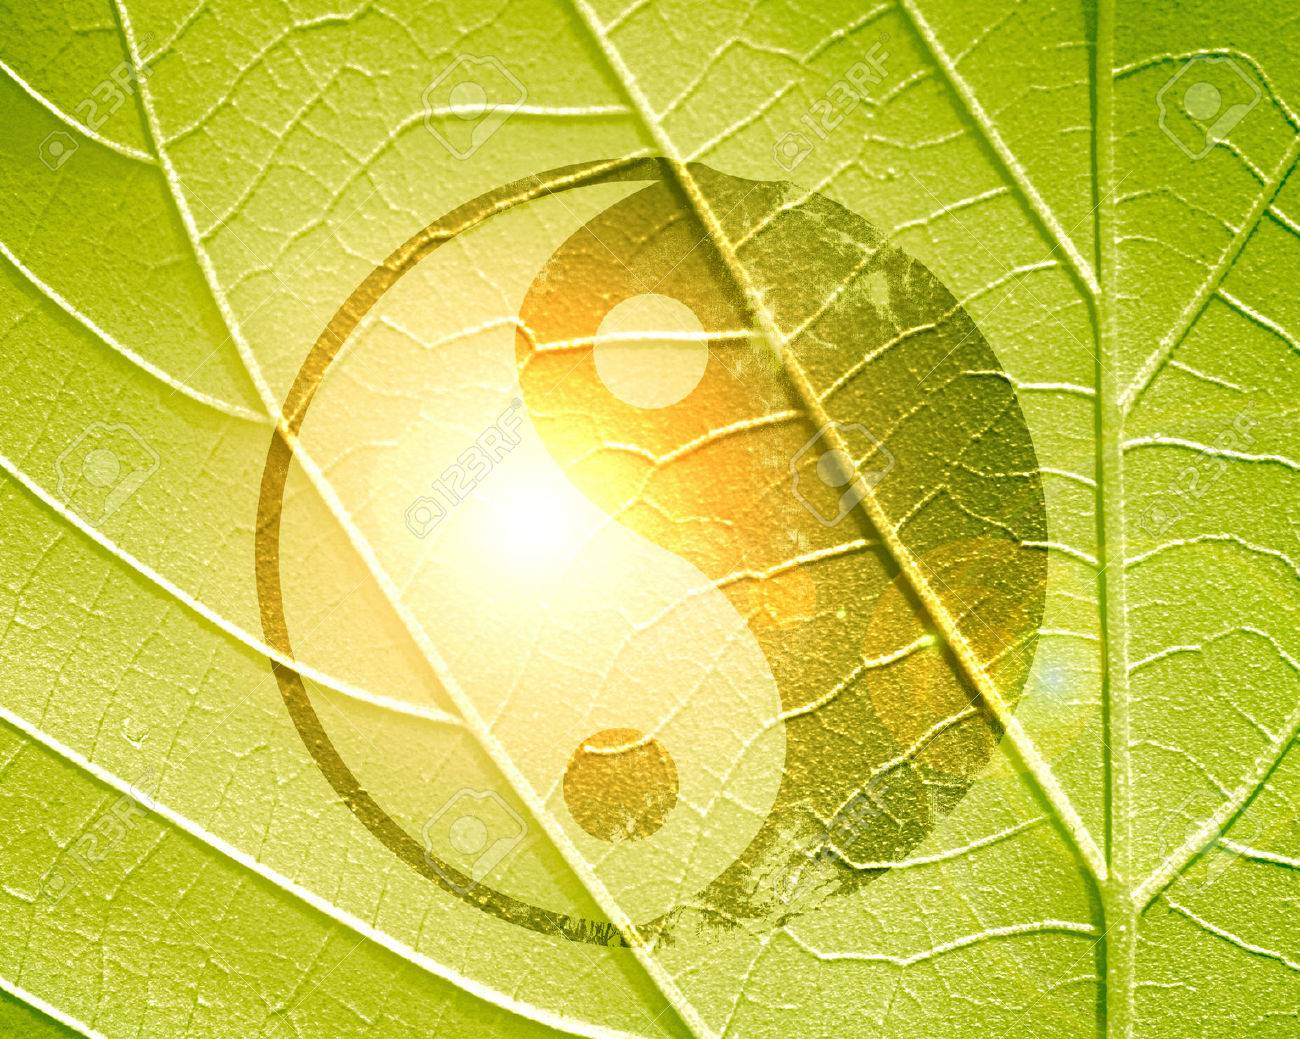 yin yang sign on a natural green background Stock Photo - 22347869